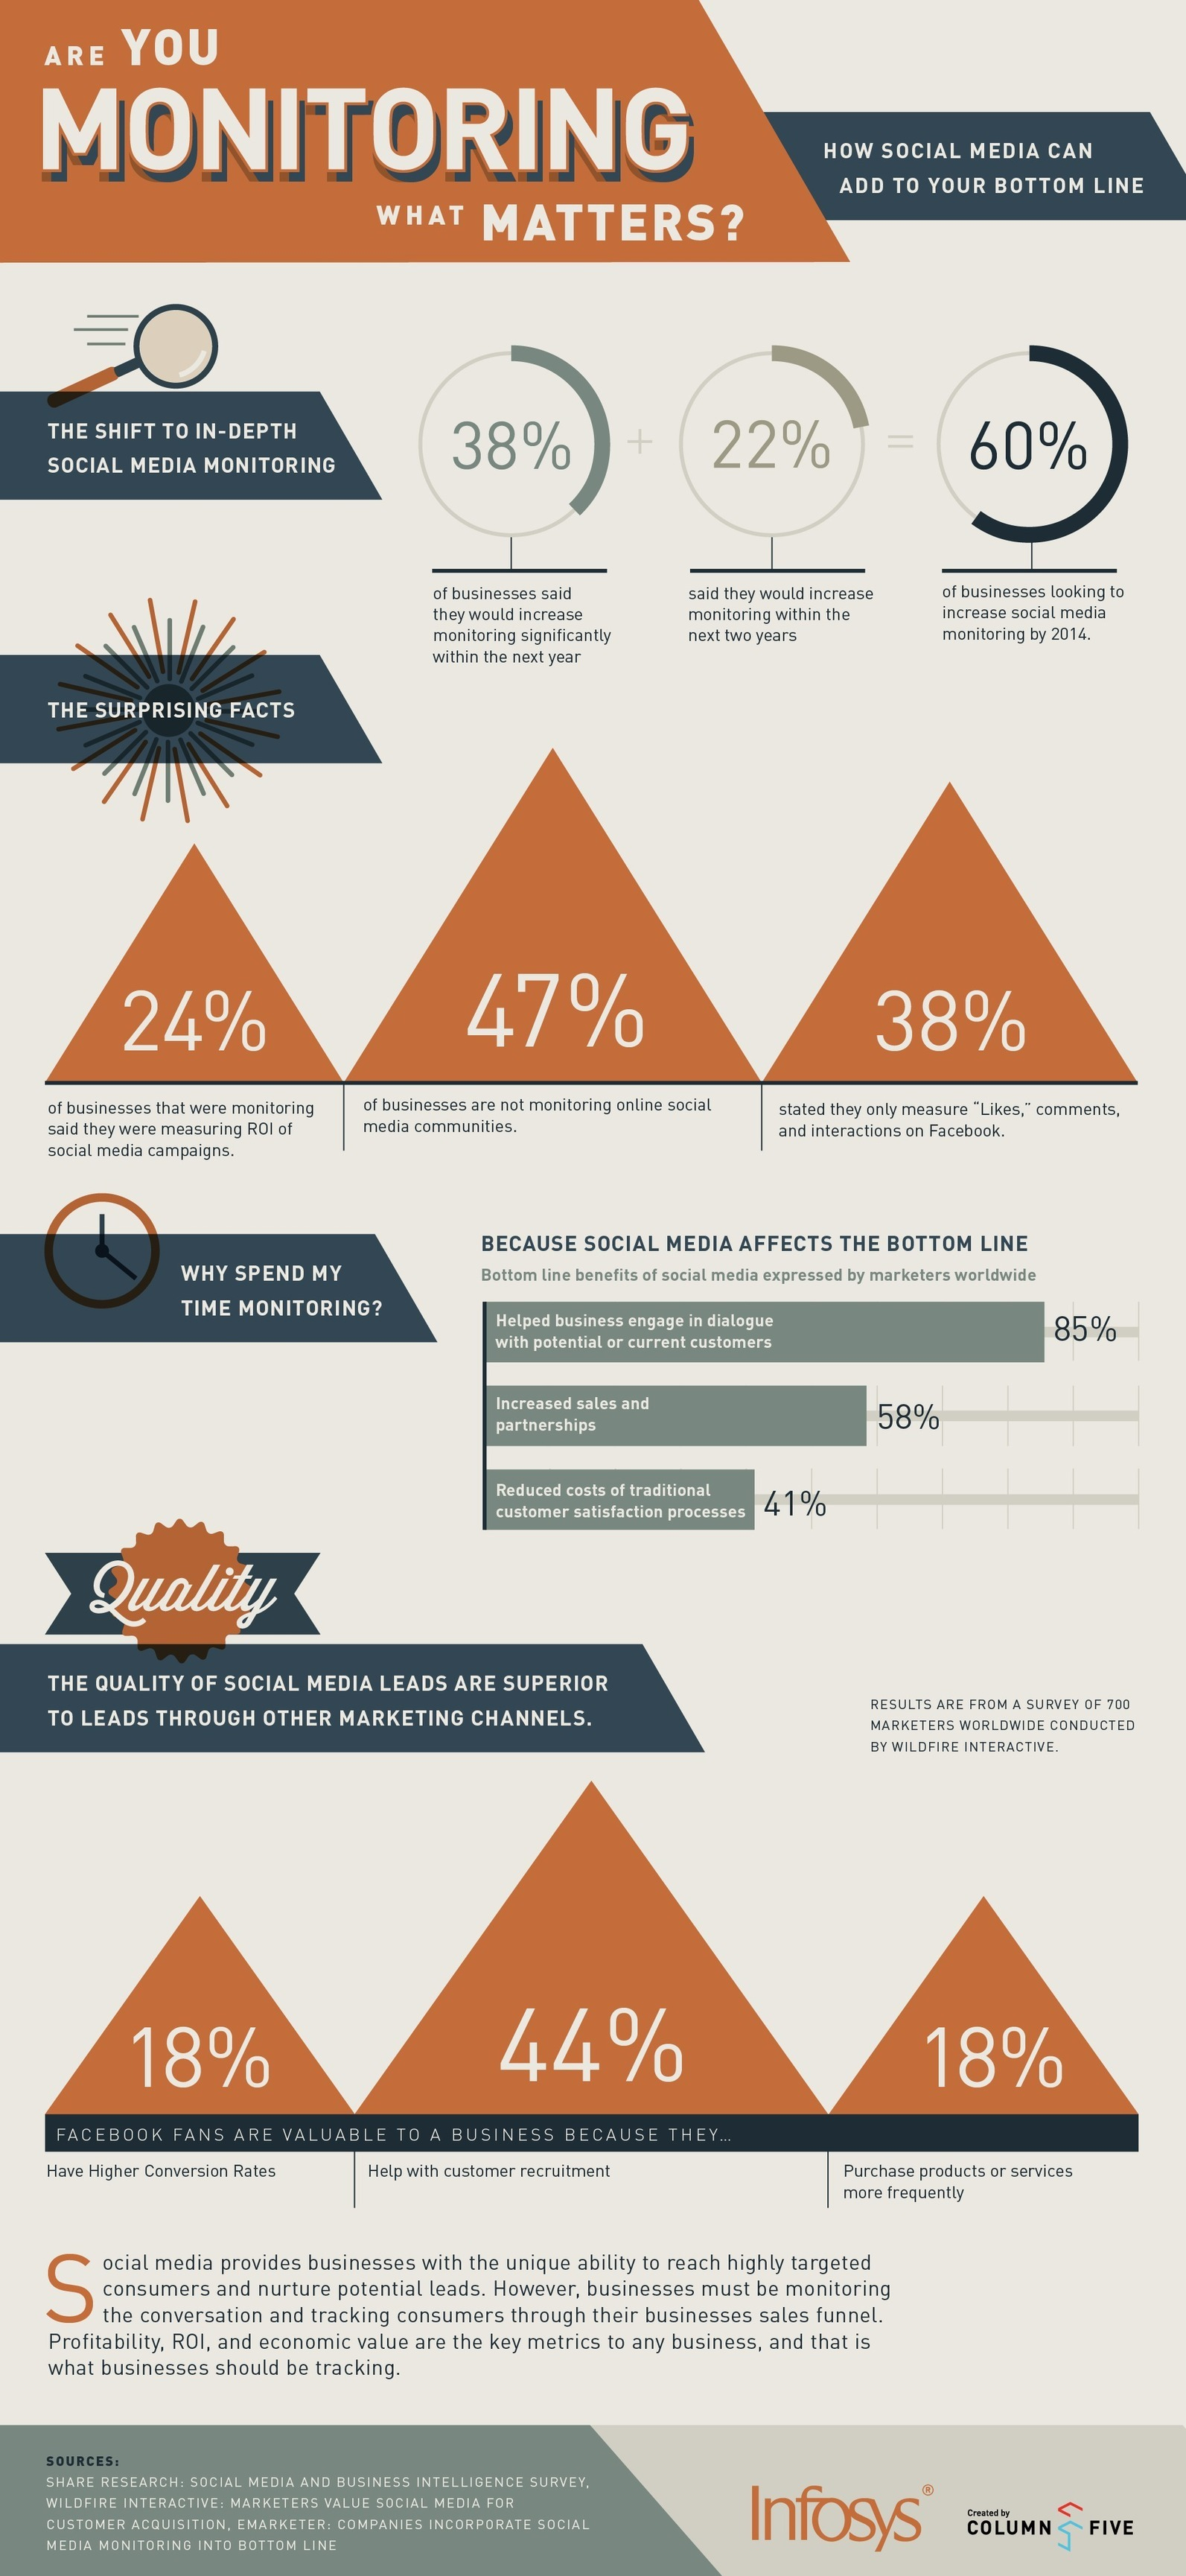 Is Your Business Monitoring What Matters On Social Media? [INFOGRAPHIC]